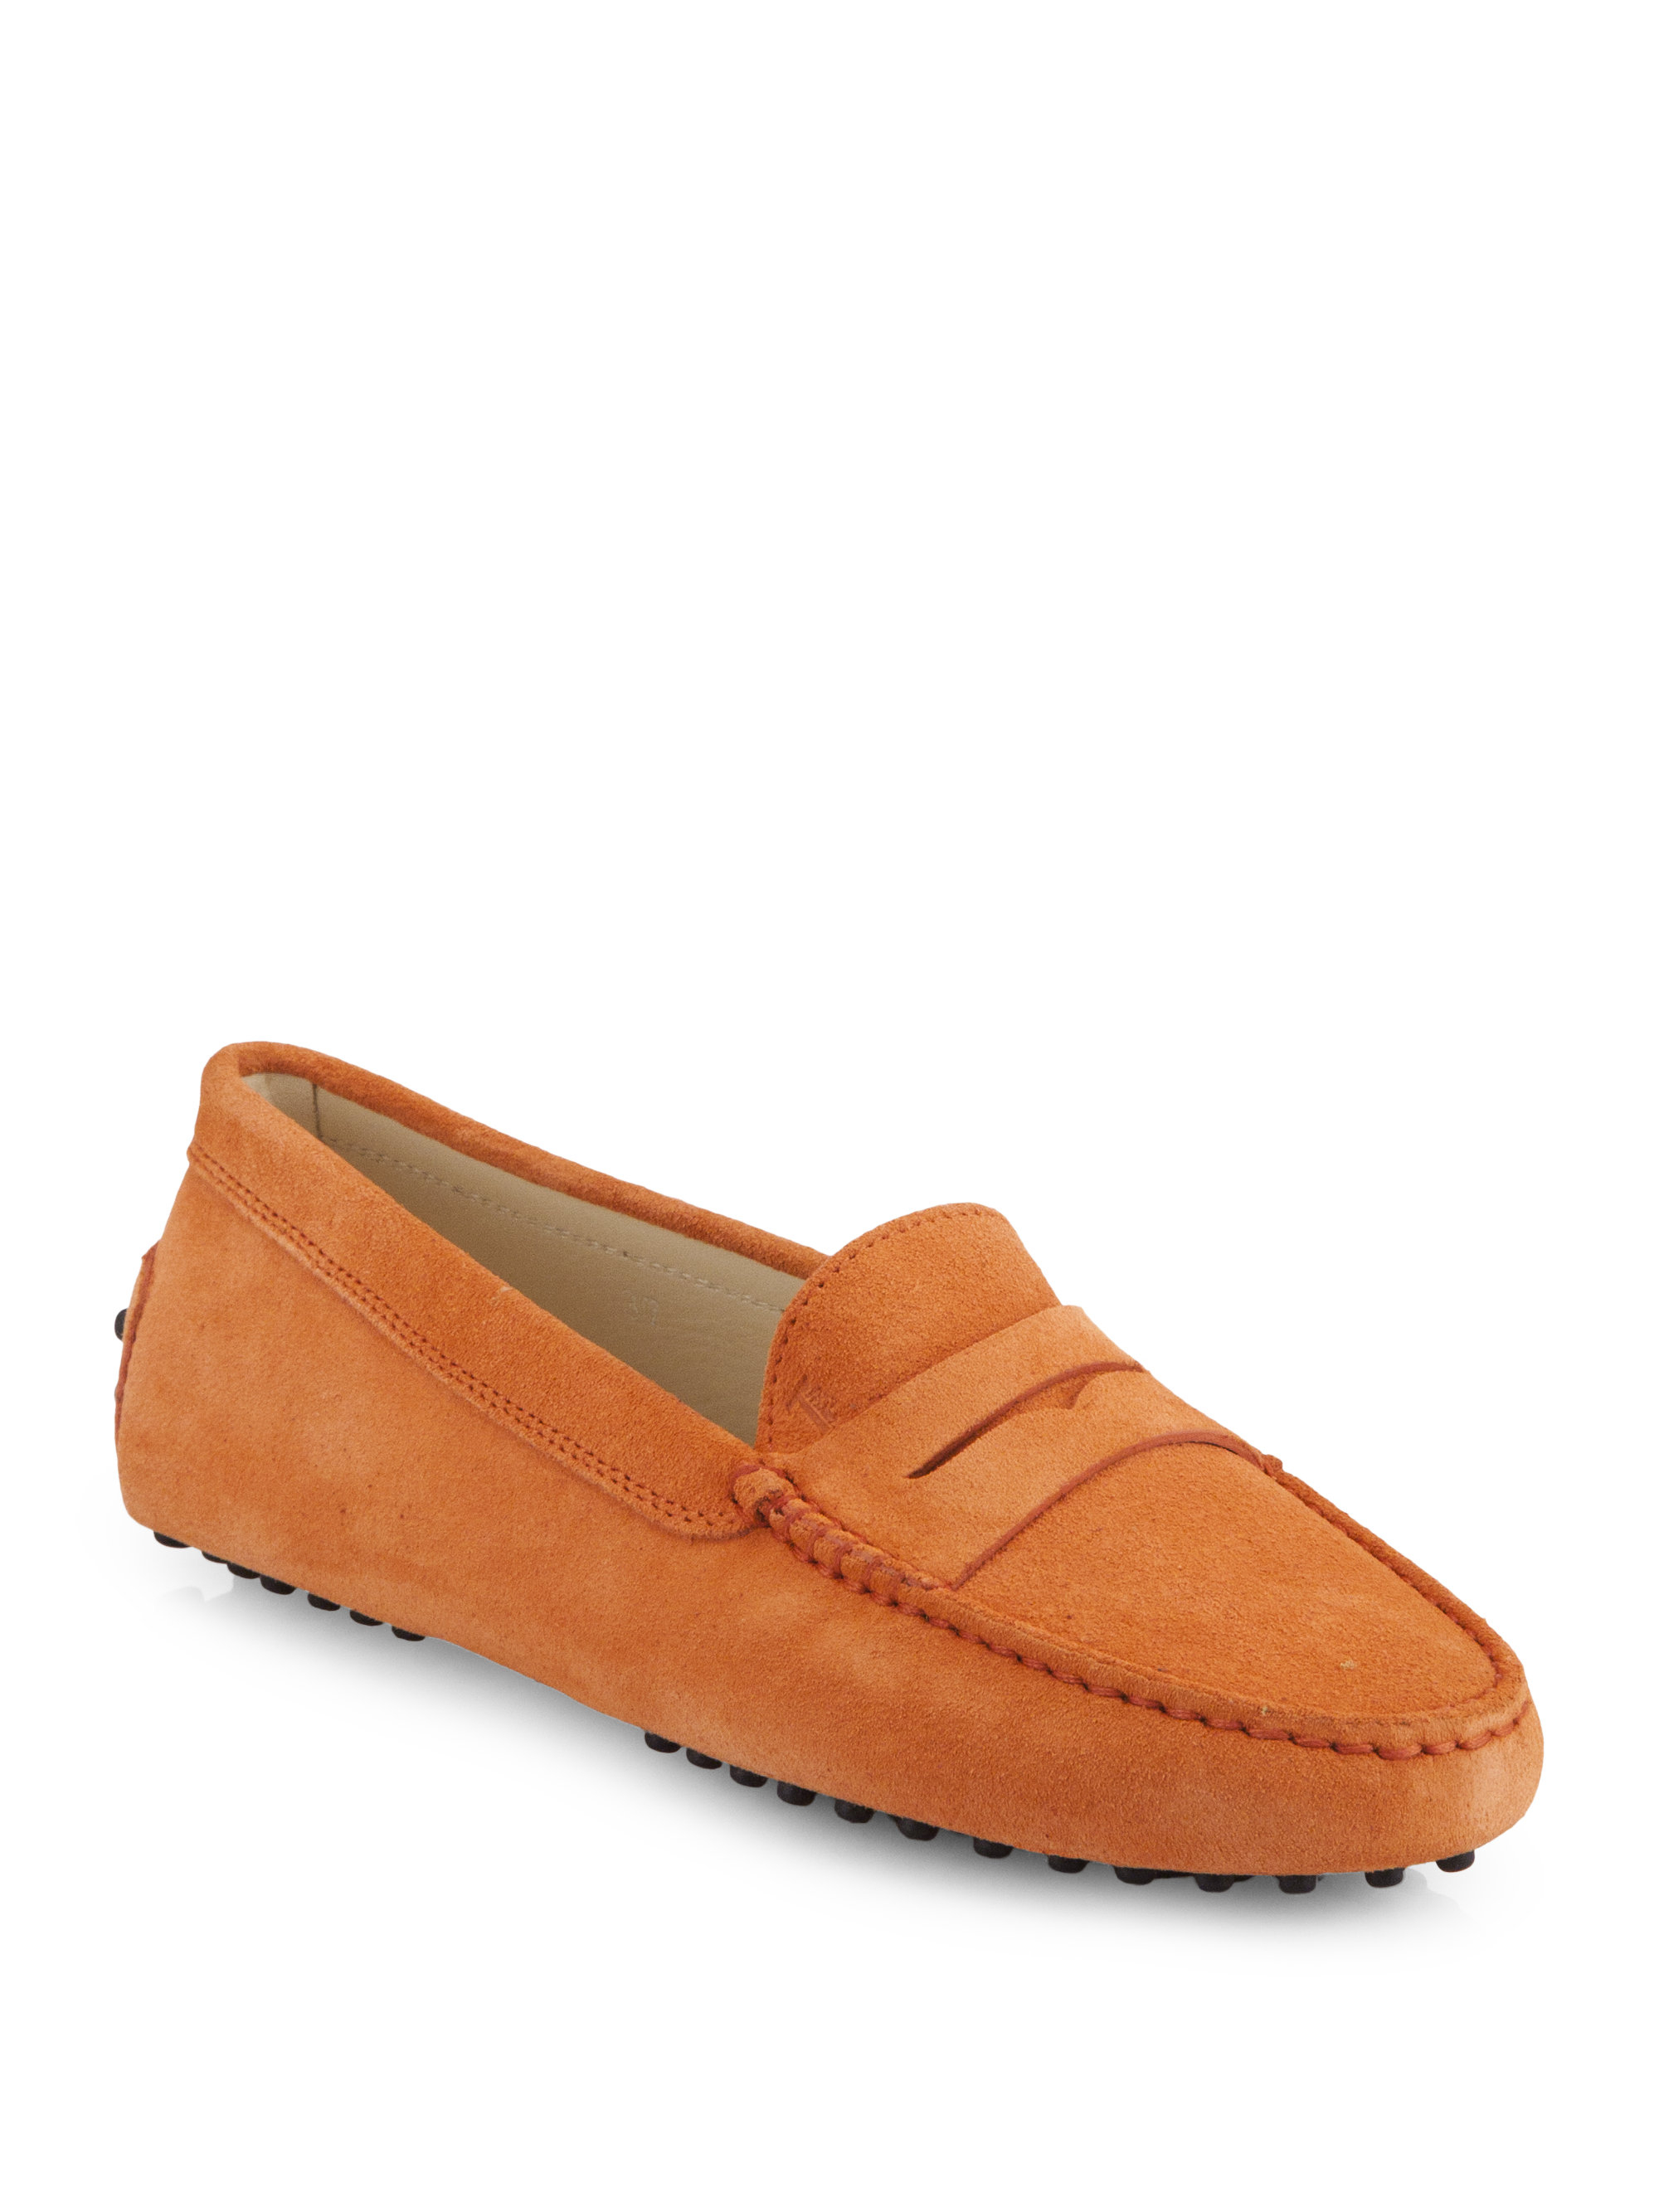 Saks Tods Womens Shoes